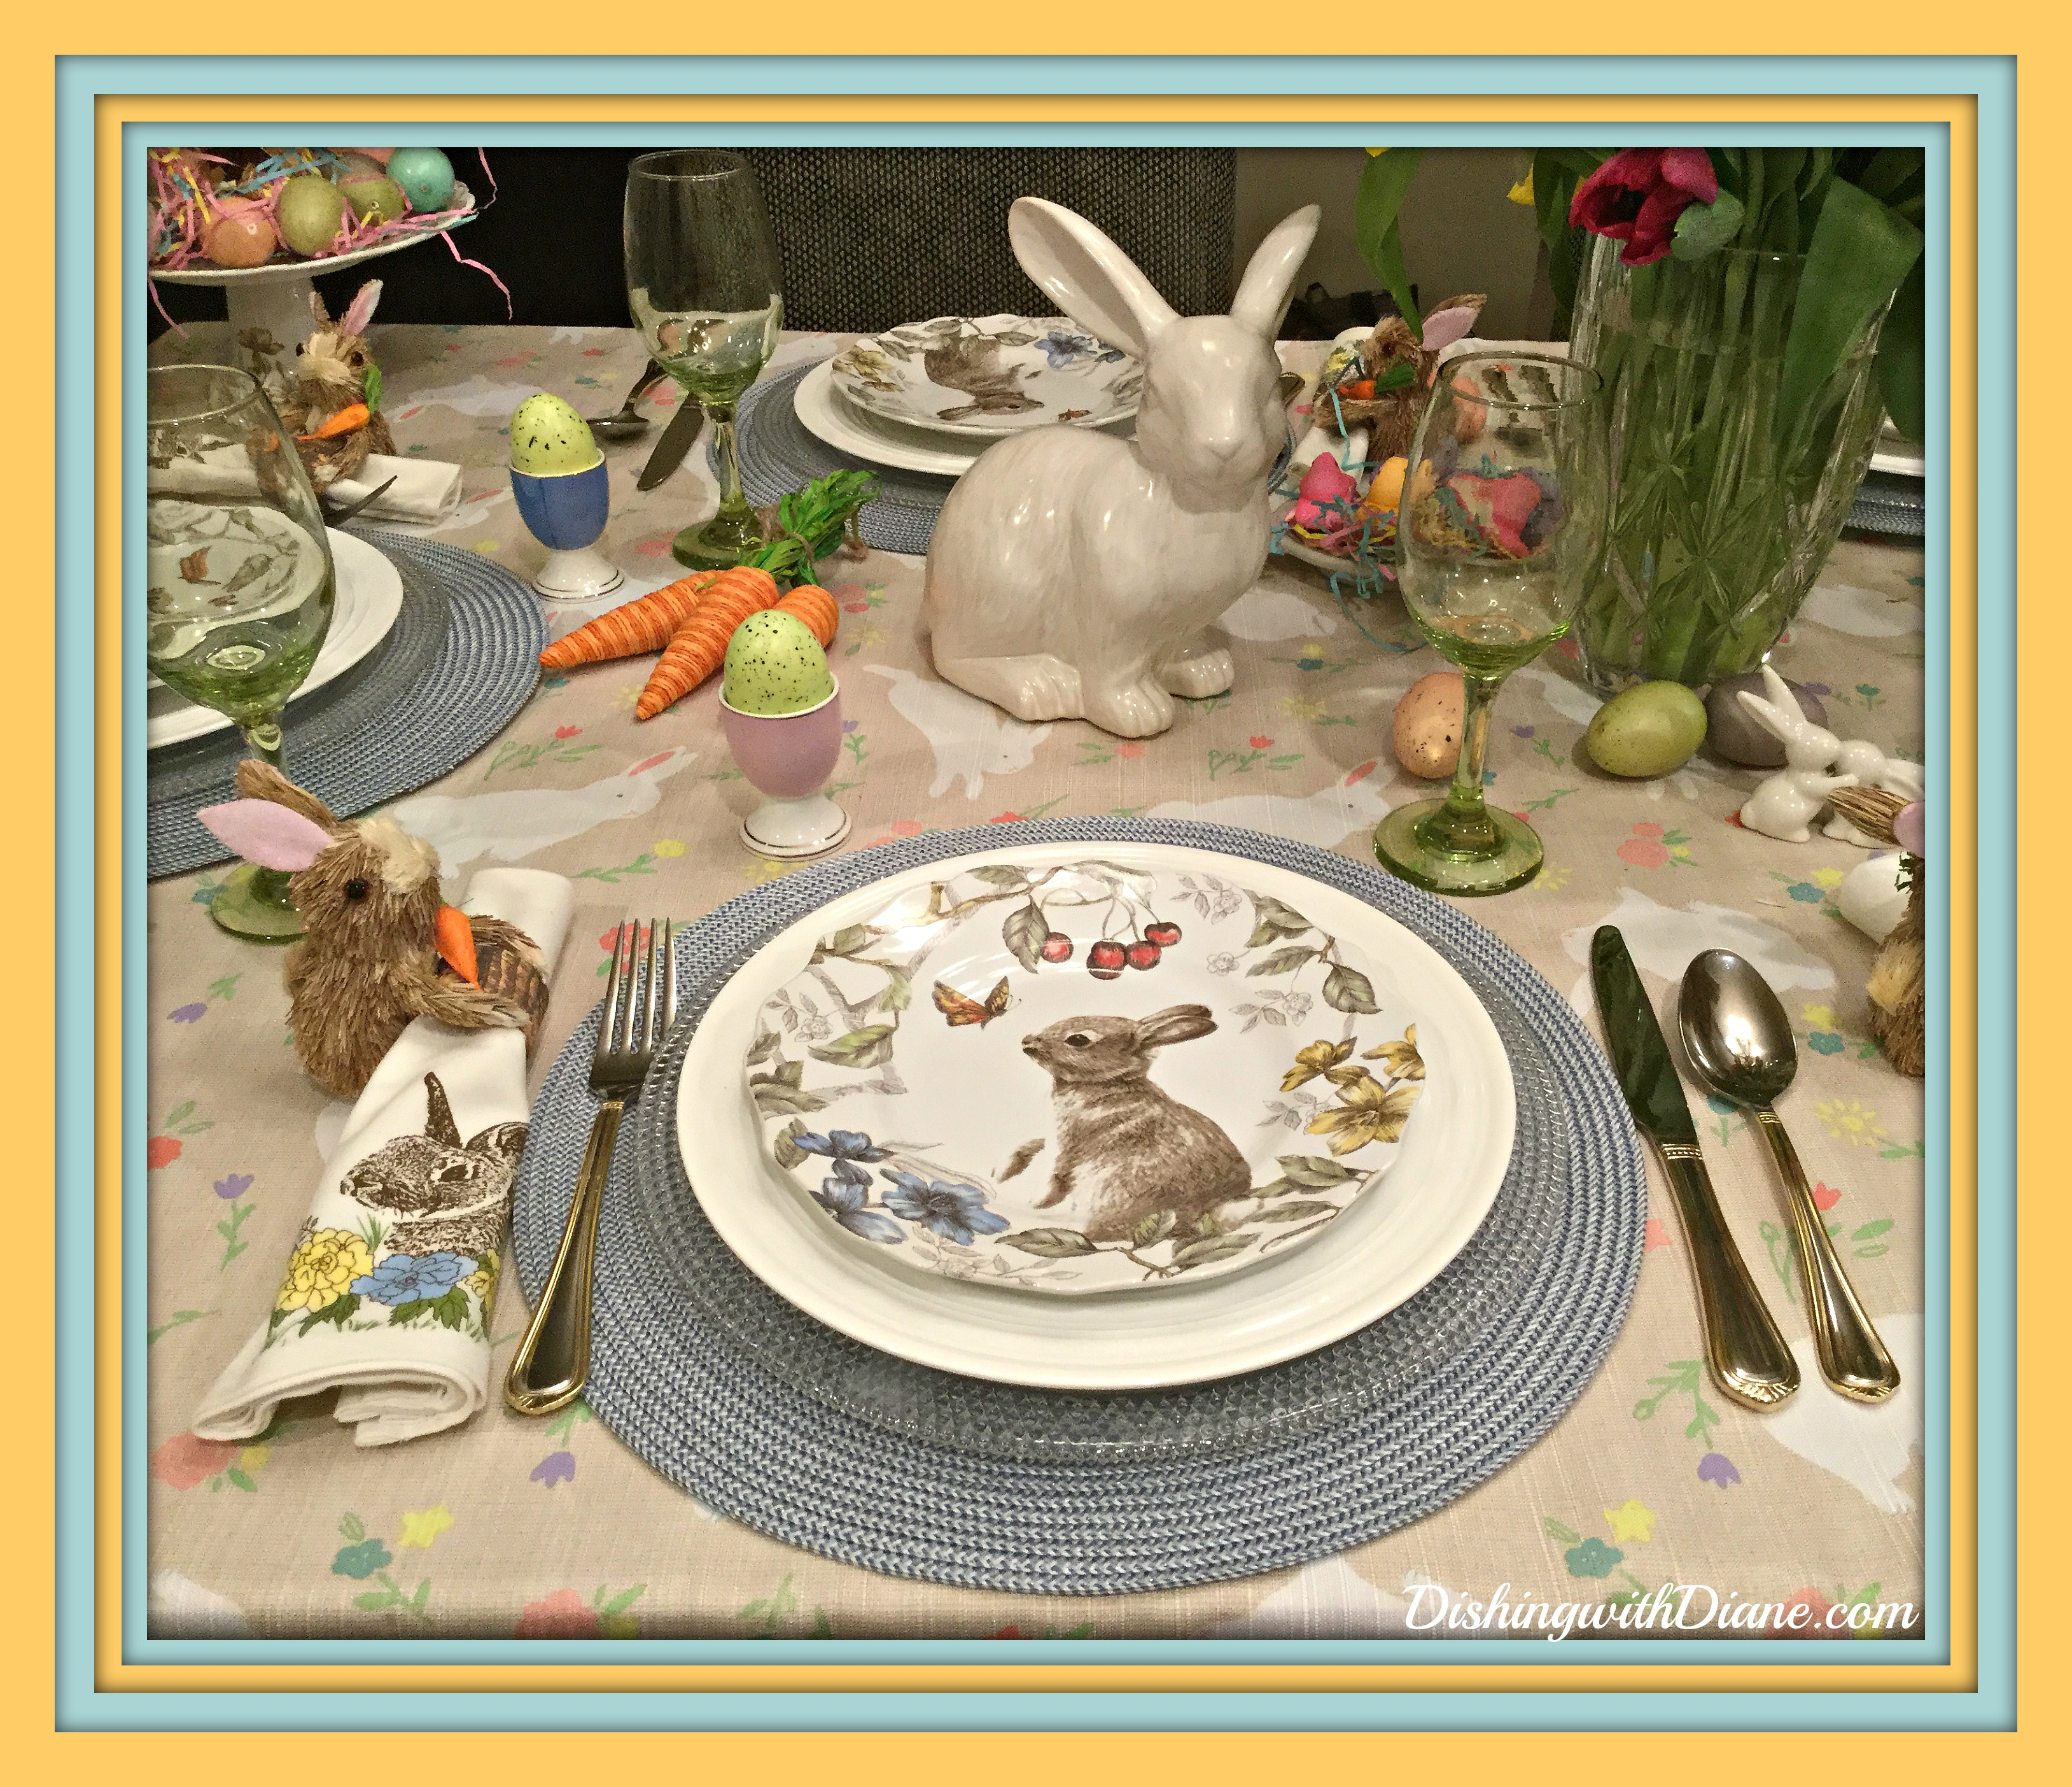 2016-03-26 21.06.58 PLACE SETTING